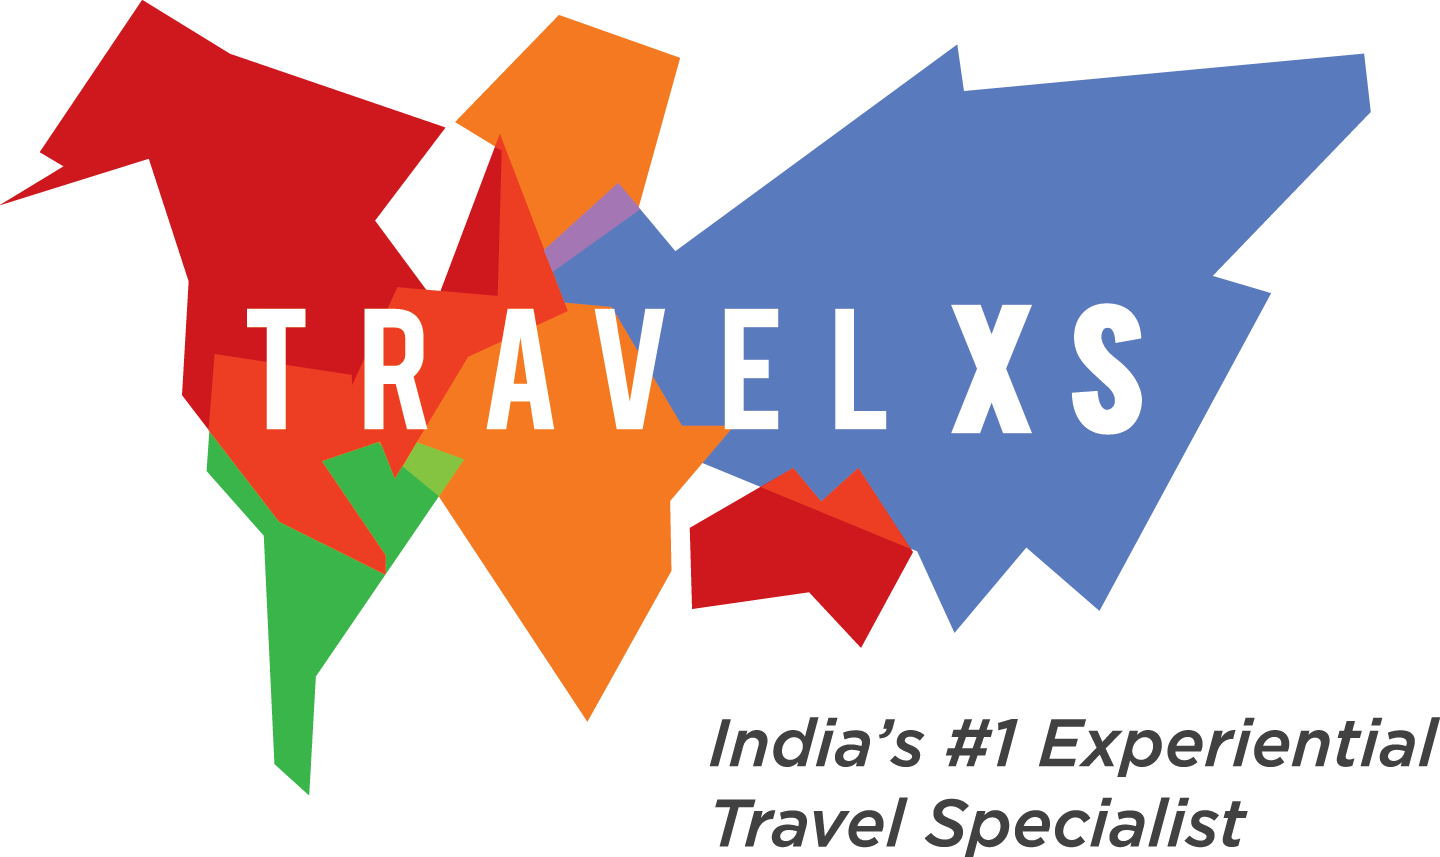 Travel xs logo